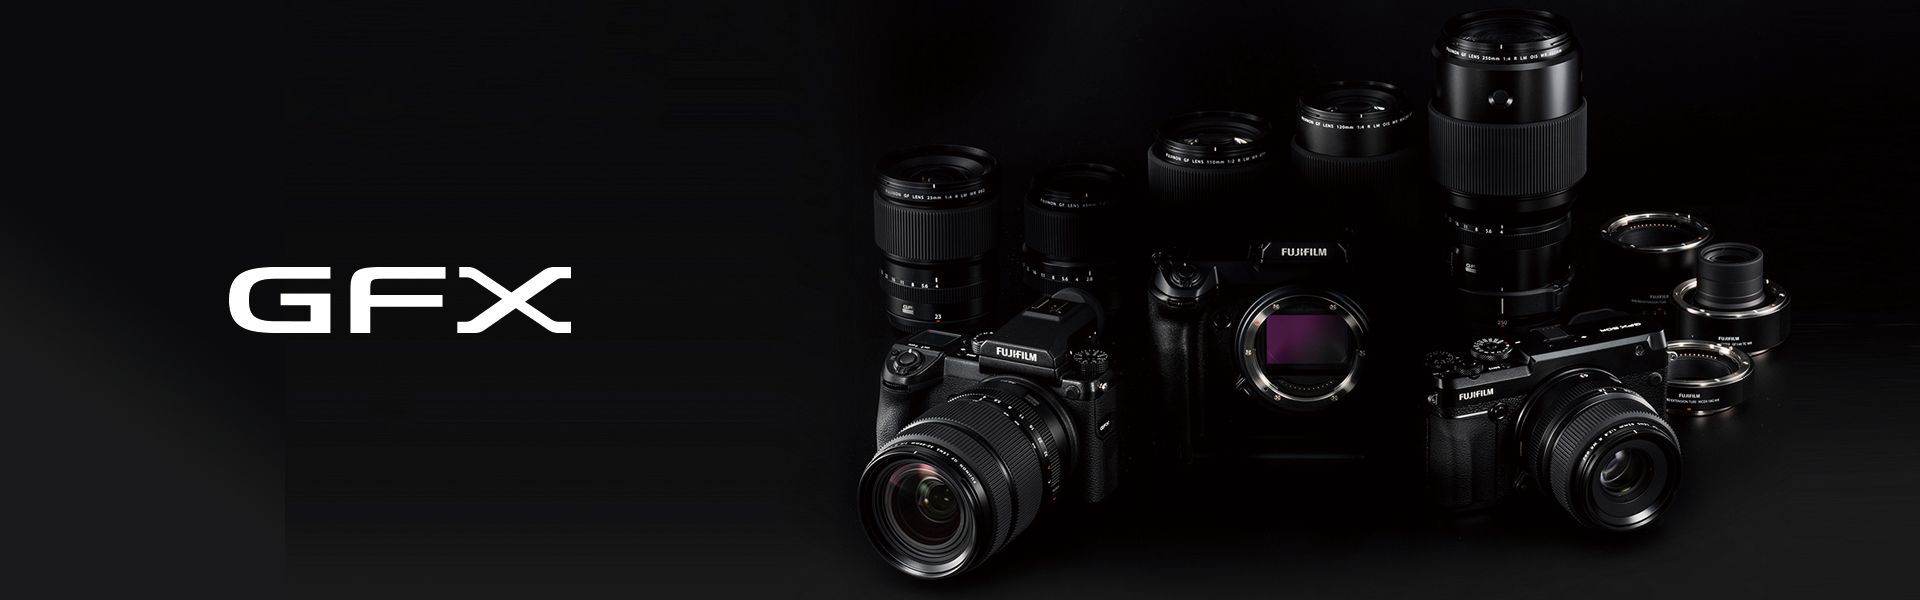 Collage of GFX System cameras and lenses